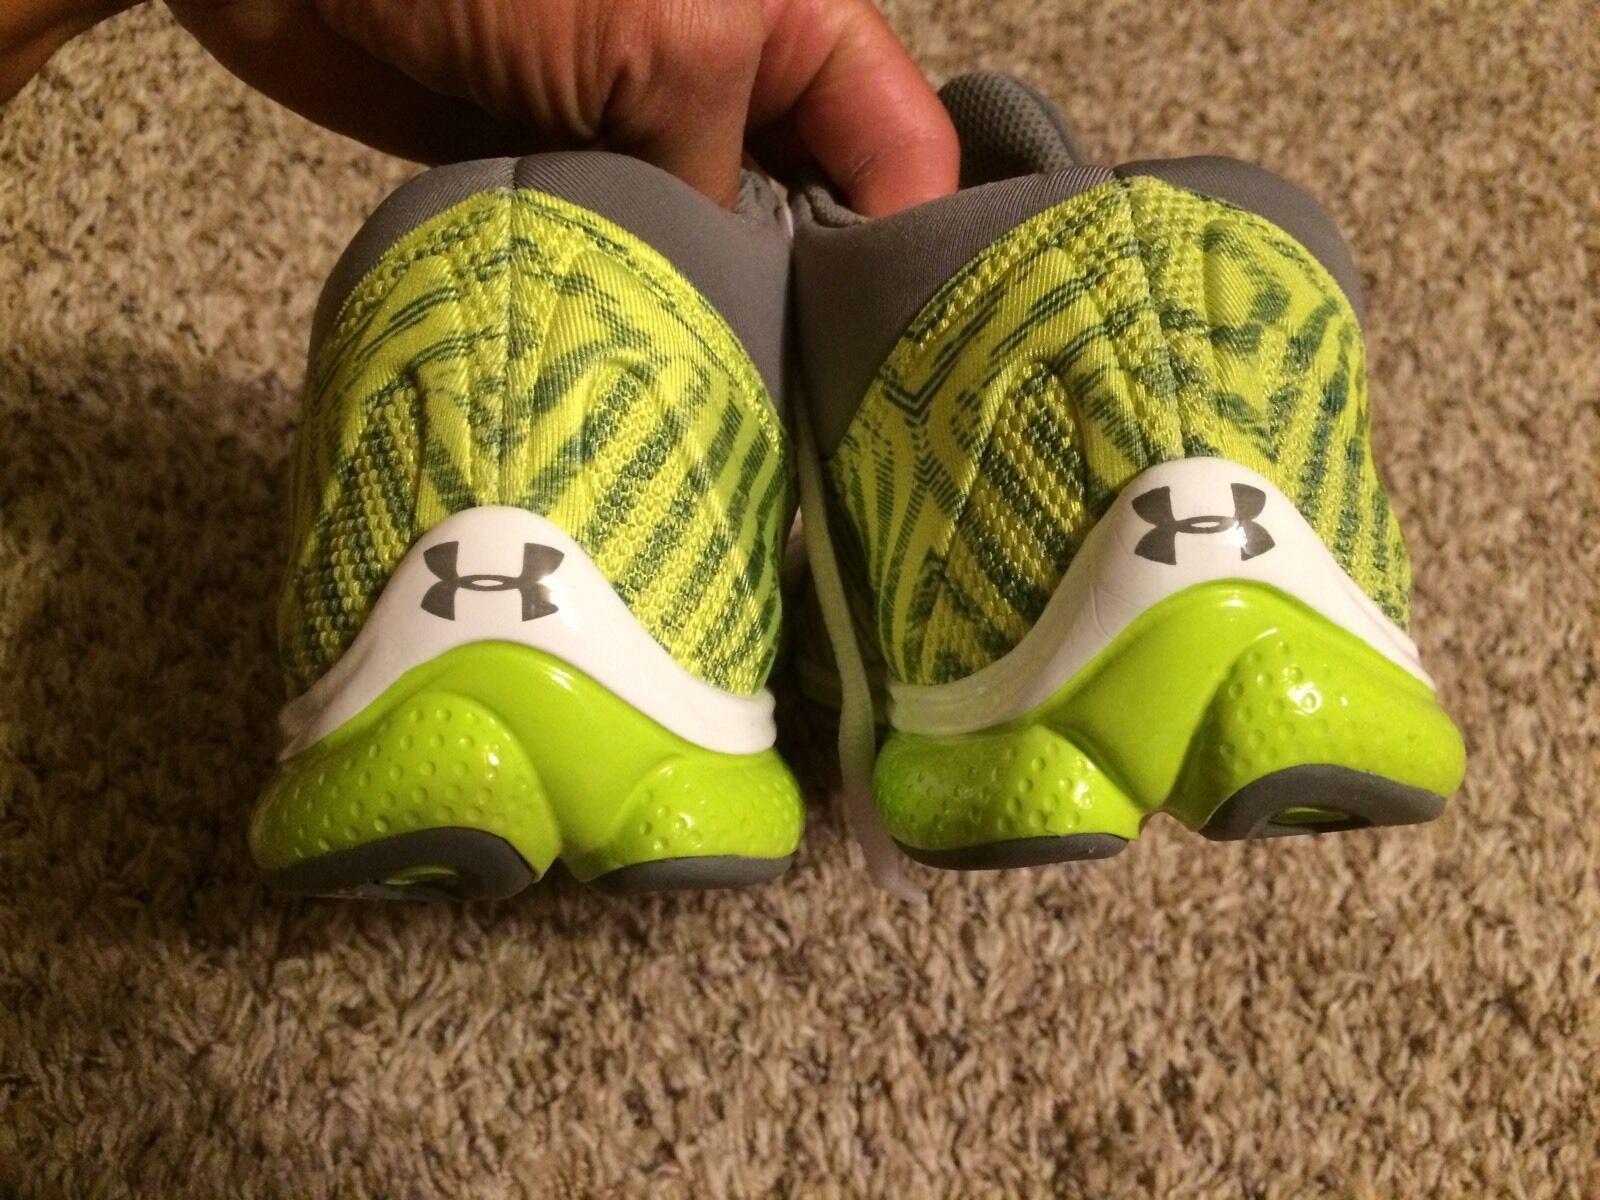 Under Armour 4D foam micro G performance trainer Athlete Gym Shoes